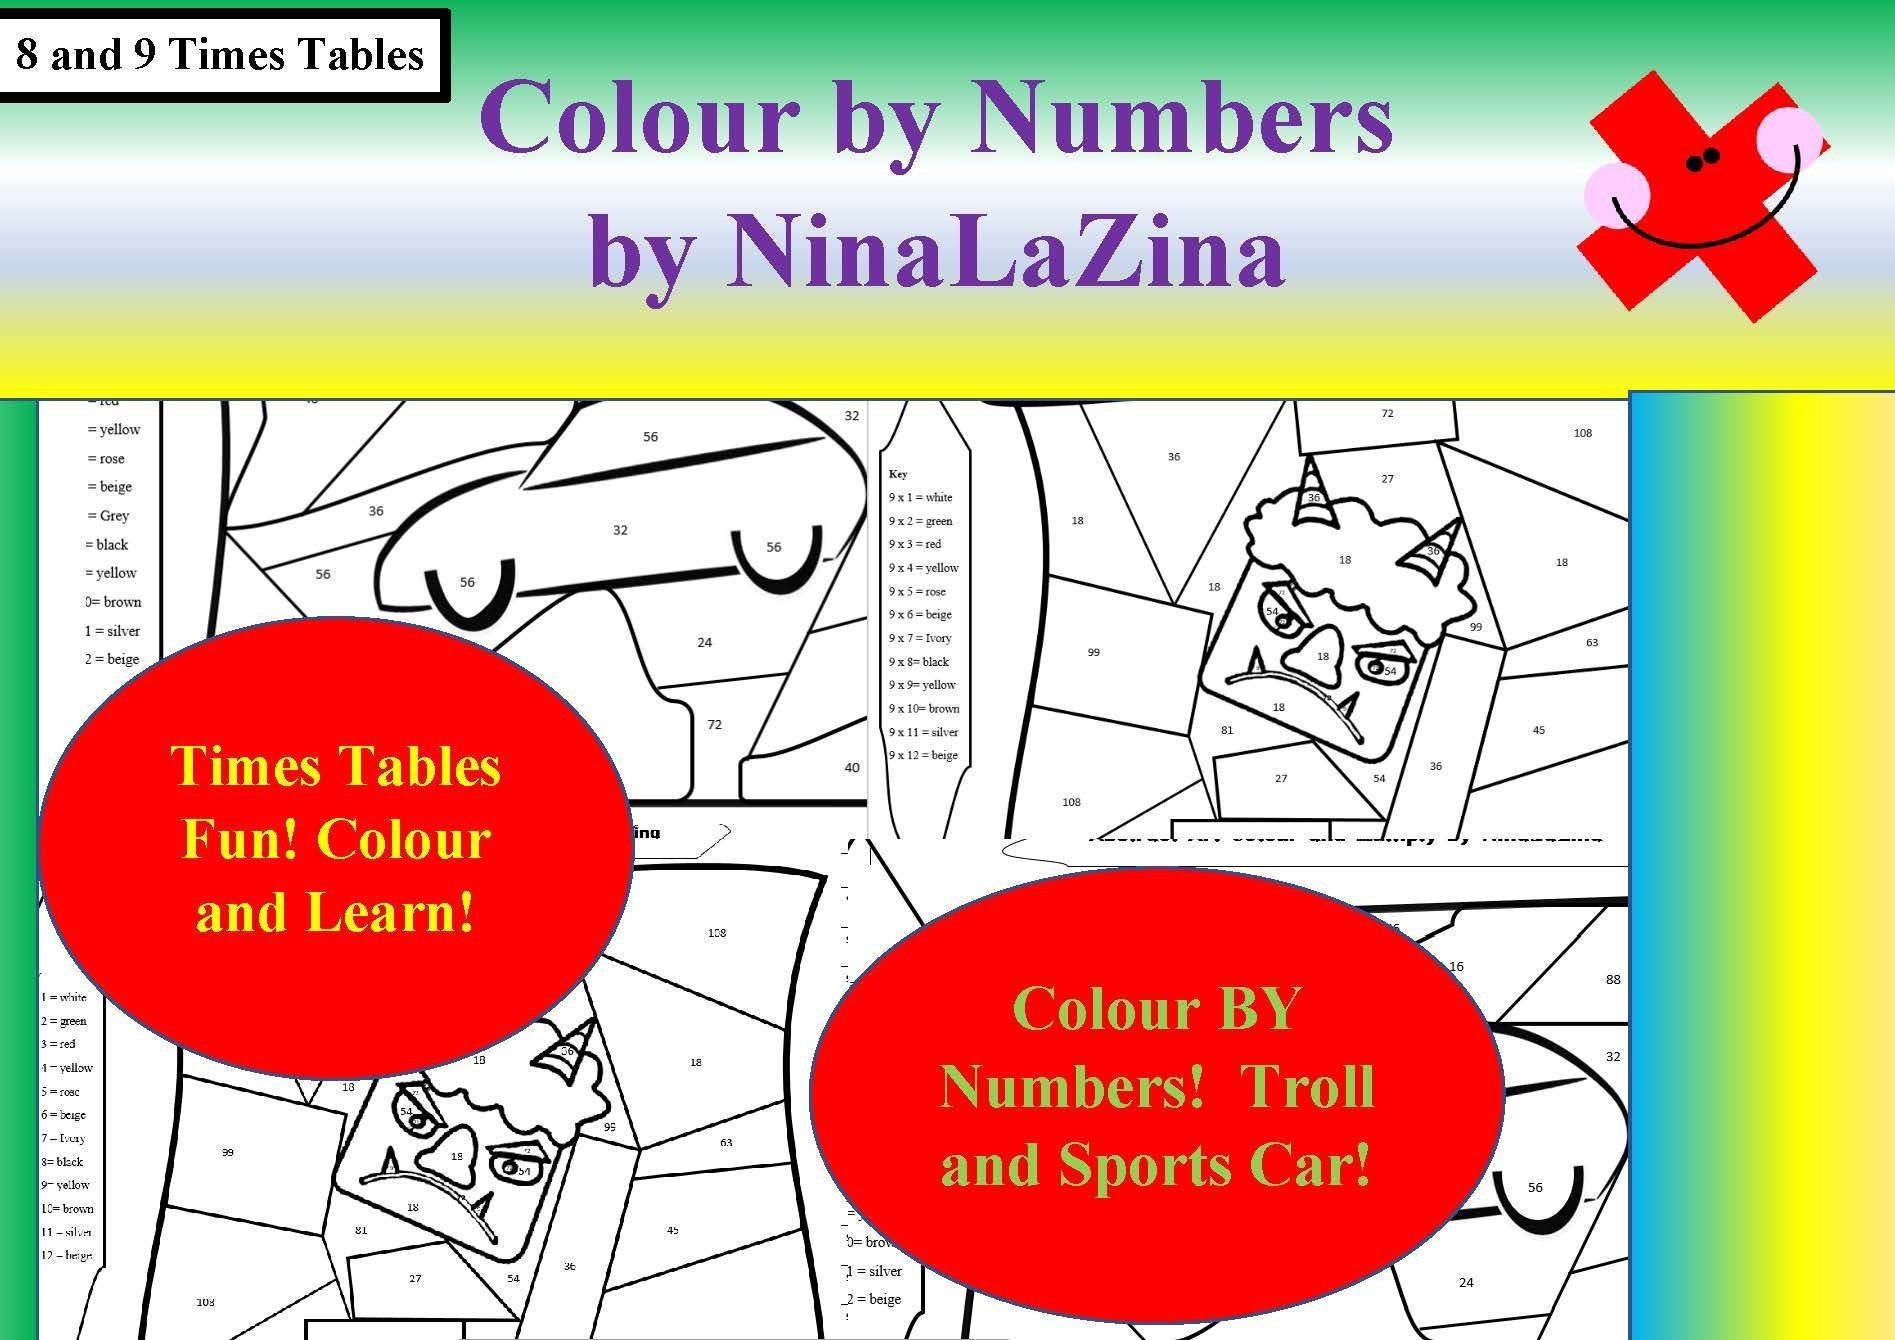 Times Table Colouring Sheets Colour By Numbers Sports Car Etsy In 2020 Color By Numbers Times Tables Multiplication Facts Games